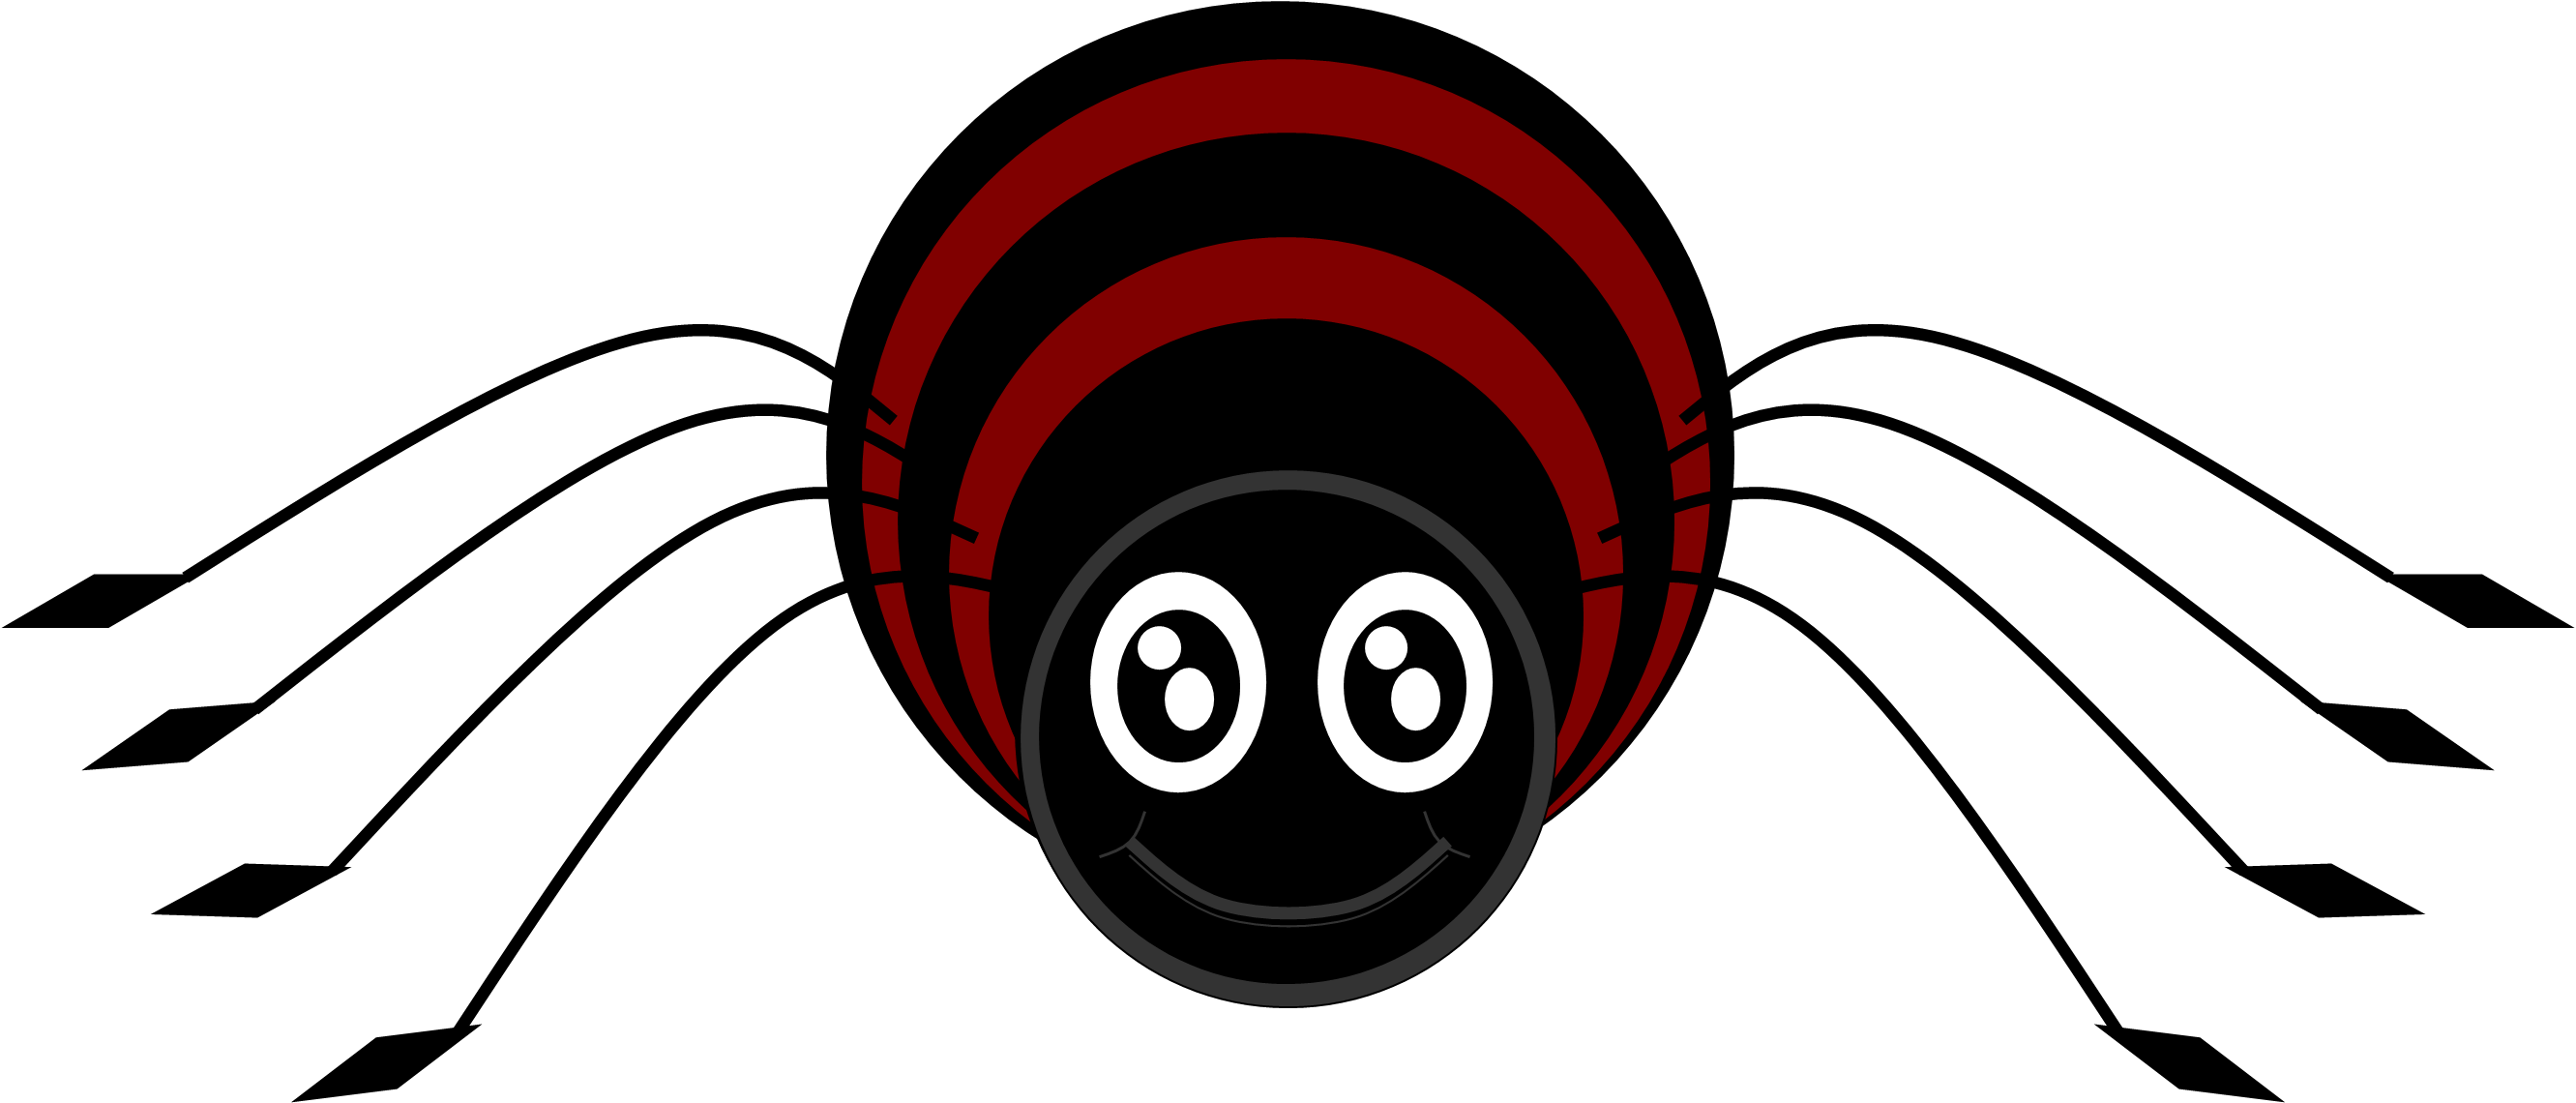 clipart spider - photo #41